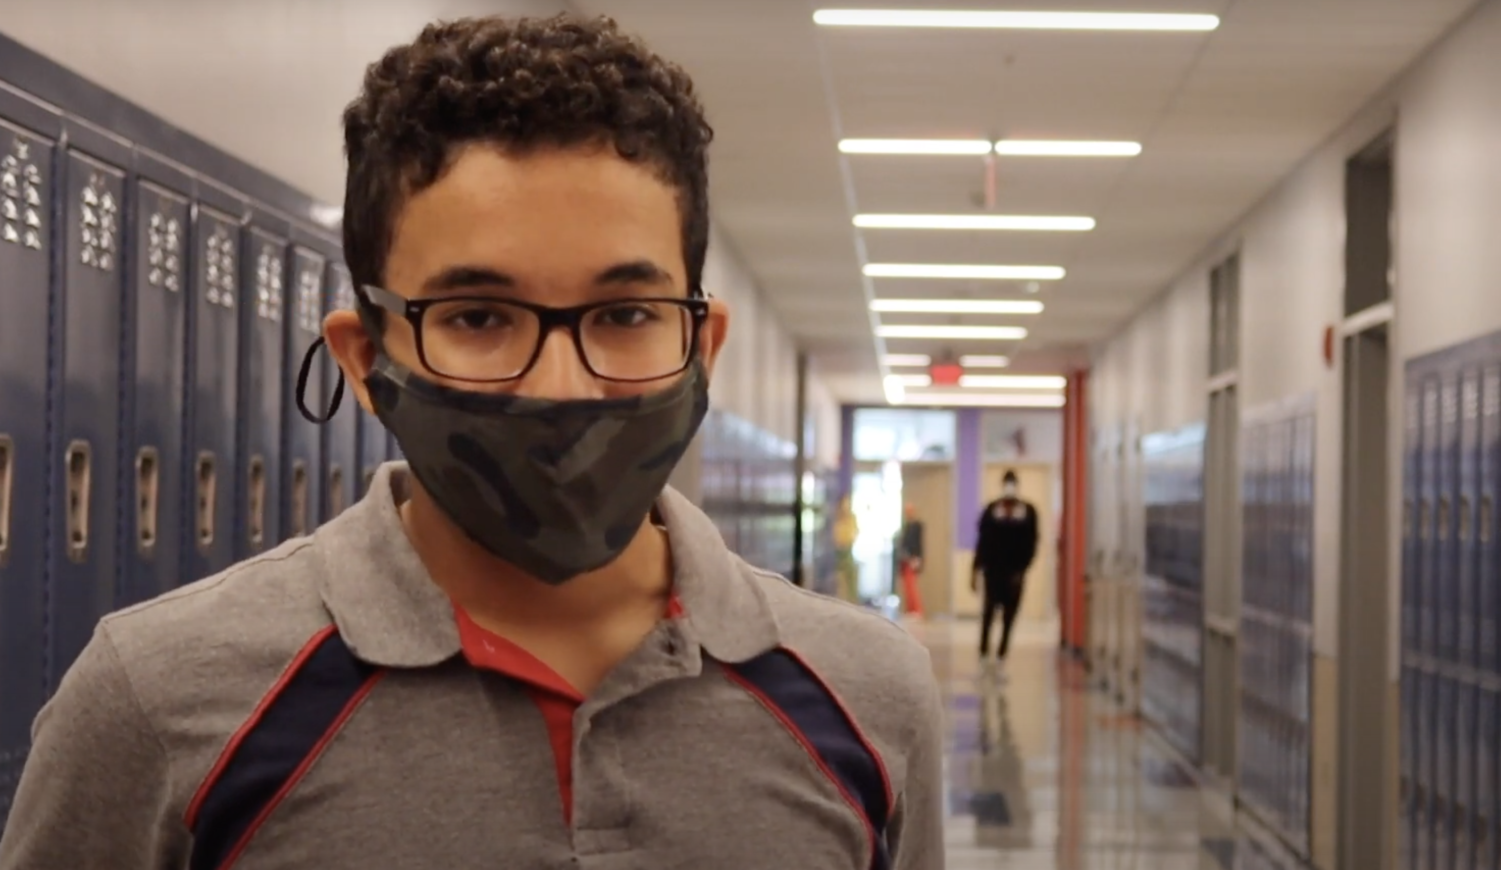 8th grader Nizar Bouyacoub shares his thoughts on the Covid restrictions in school.